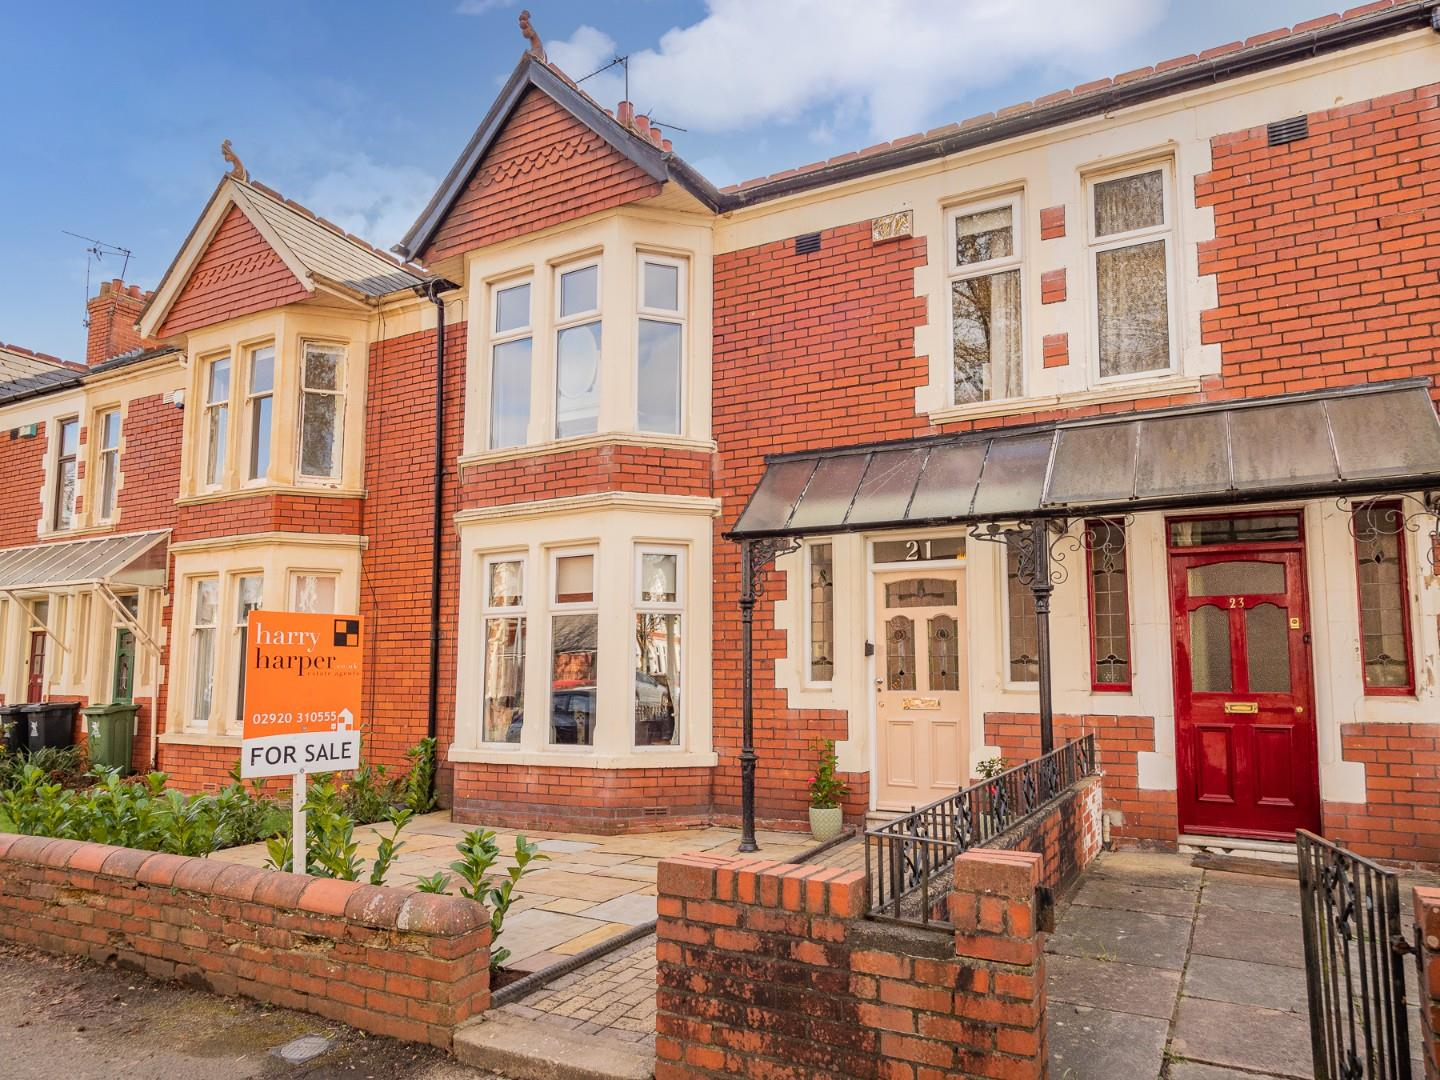 4 bed terraced house for sale in Southminster Road, Cardiff - Property Image 1